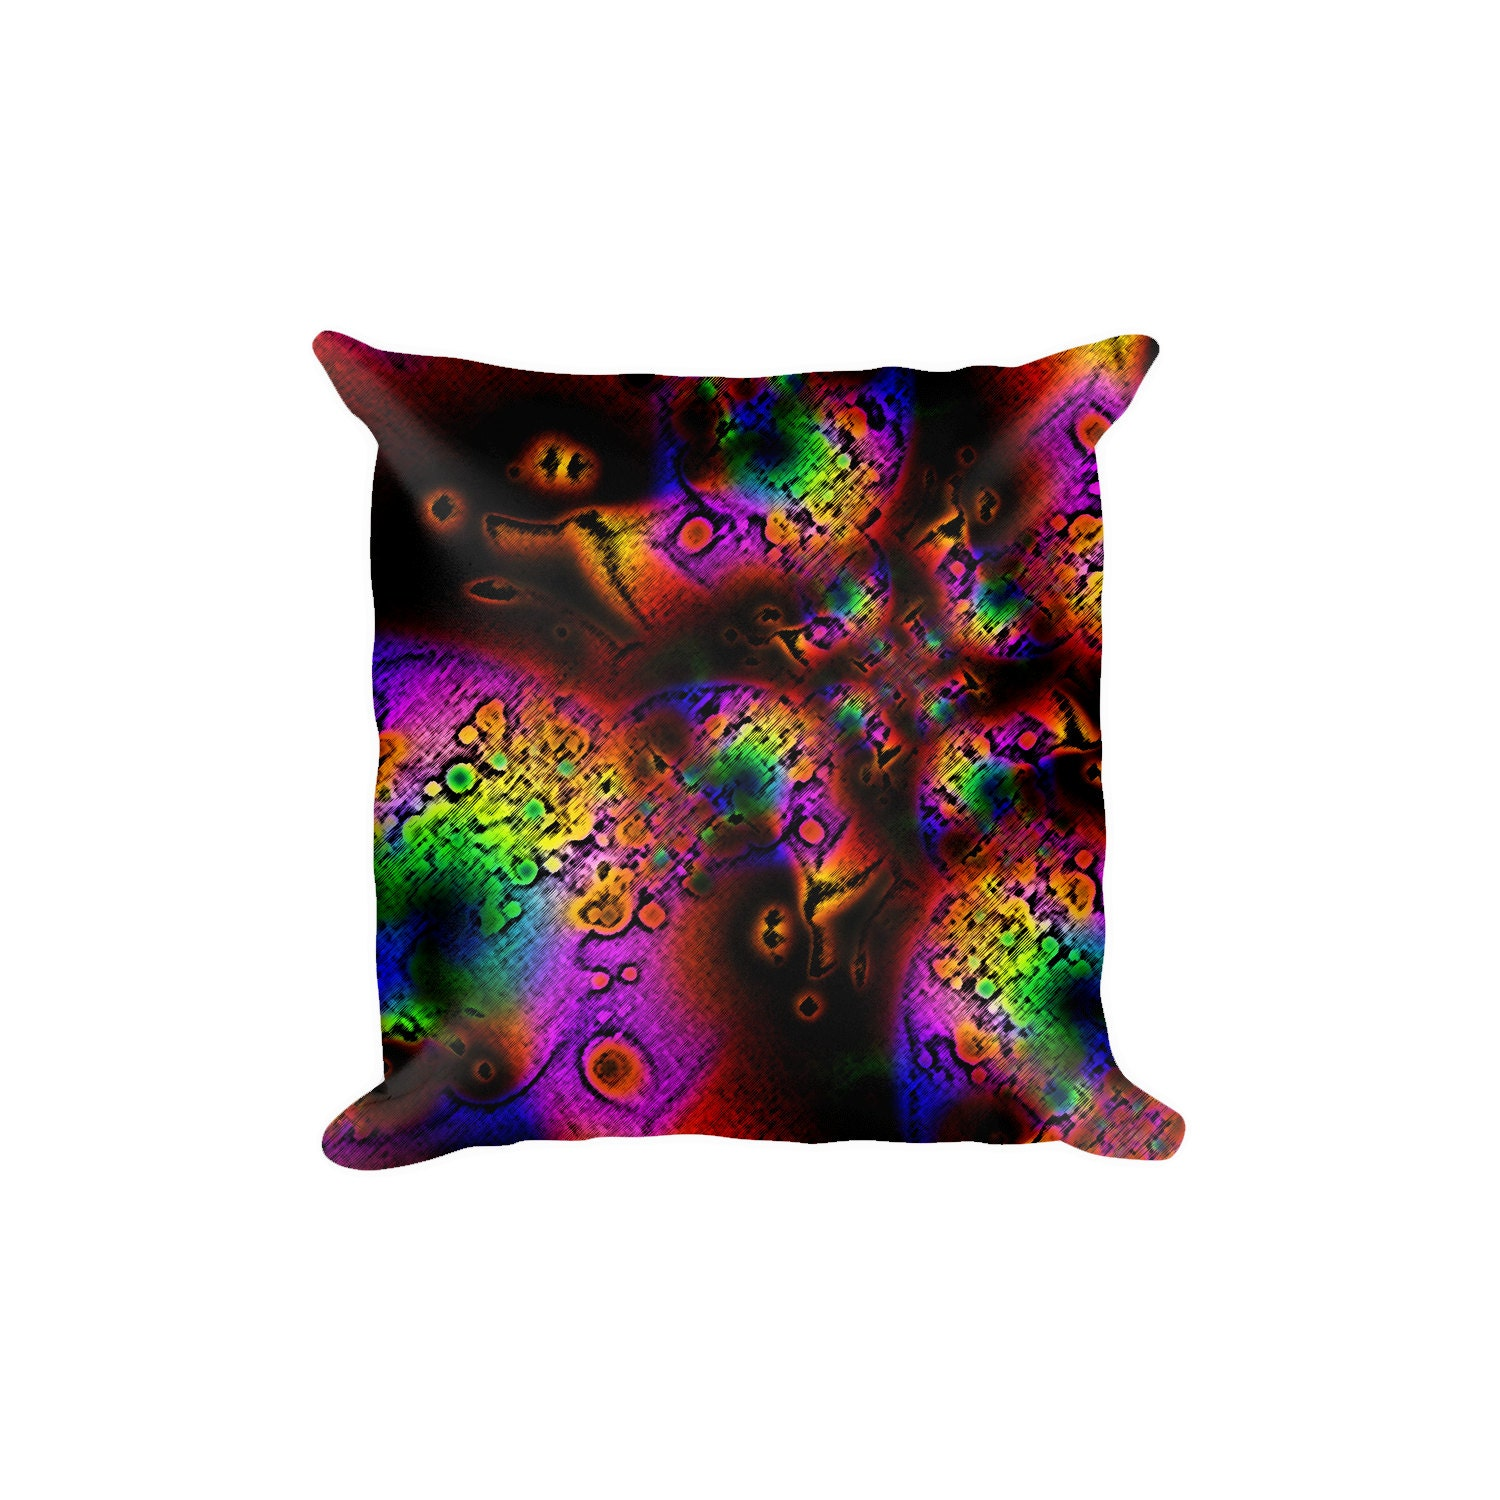 Designer Throw Pillow Decorative Pillow Artsy by LikeIguanaArt